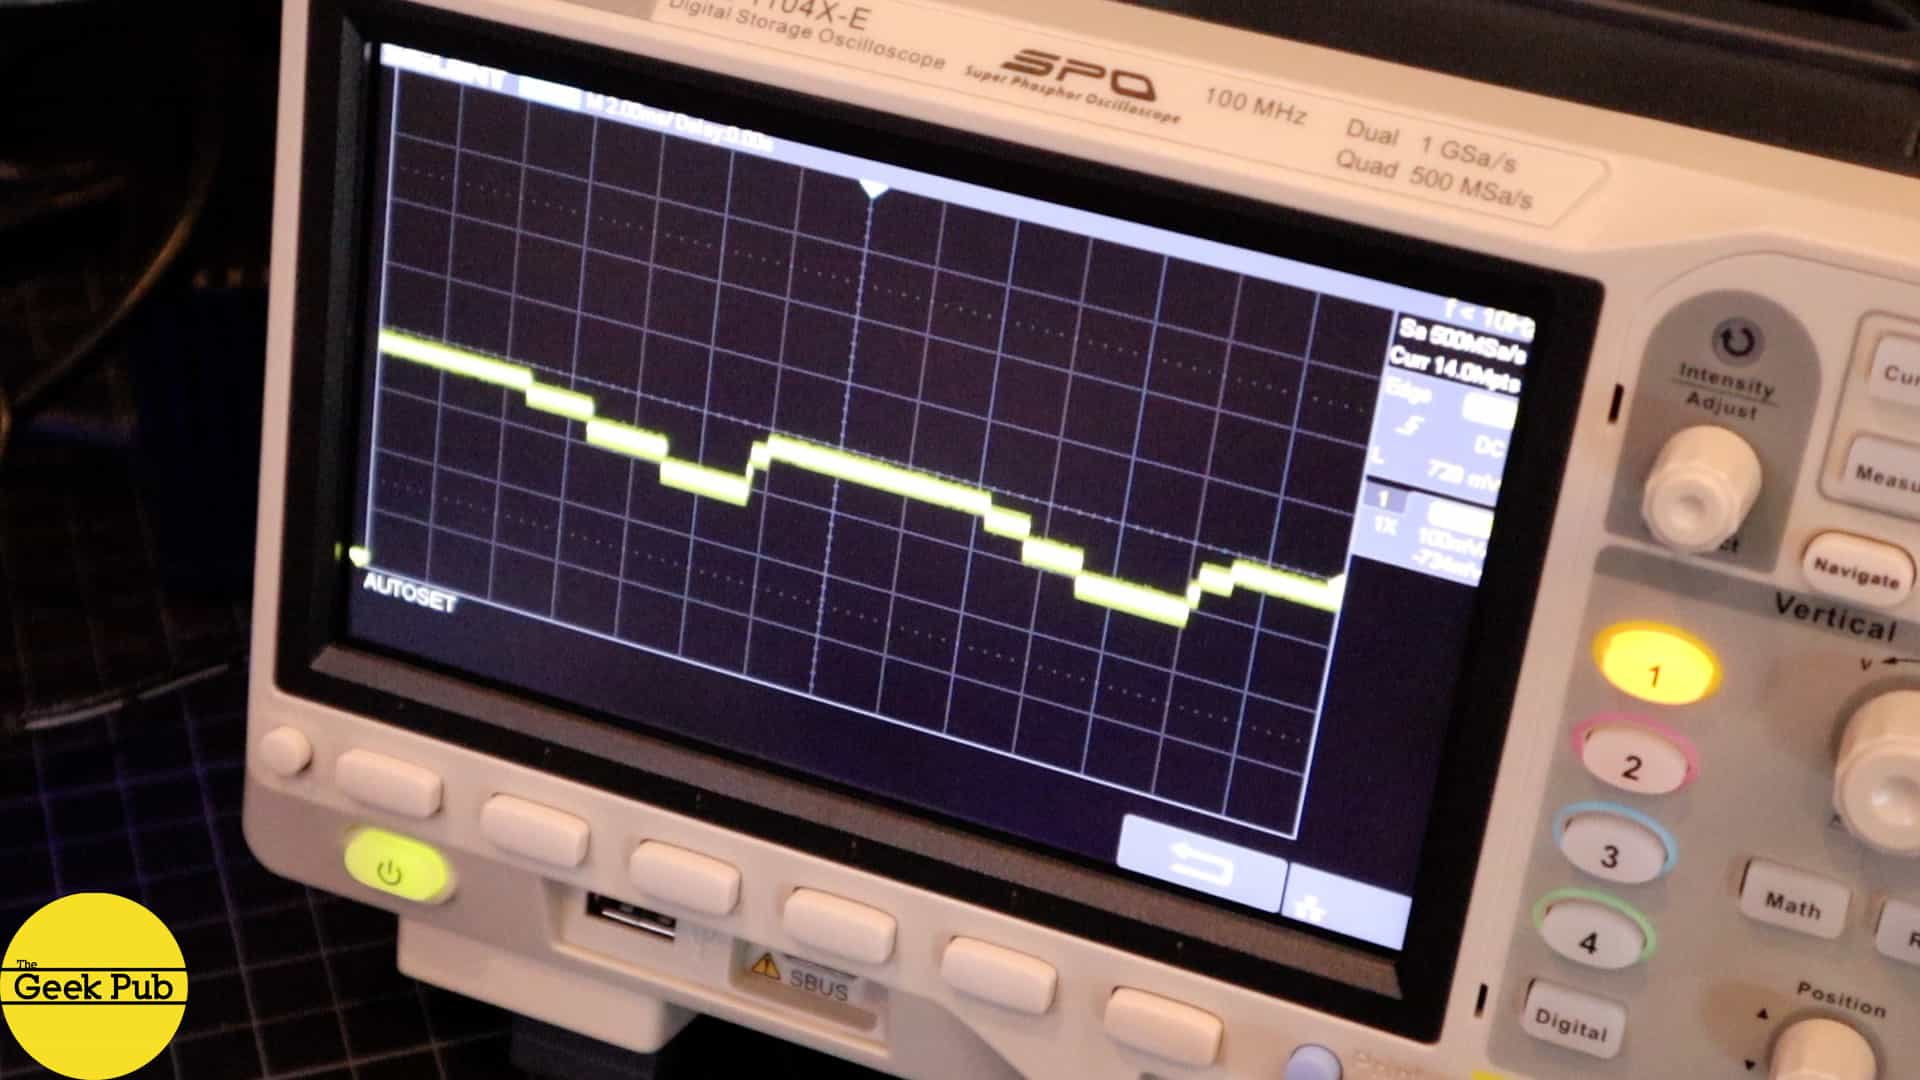 Oscilloscope Tutorial (Learn the Basics) - The Geek Pub